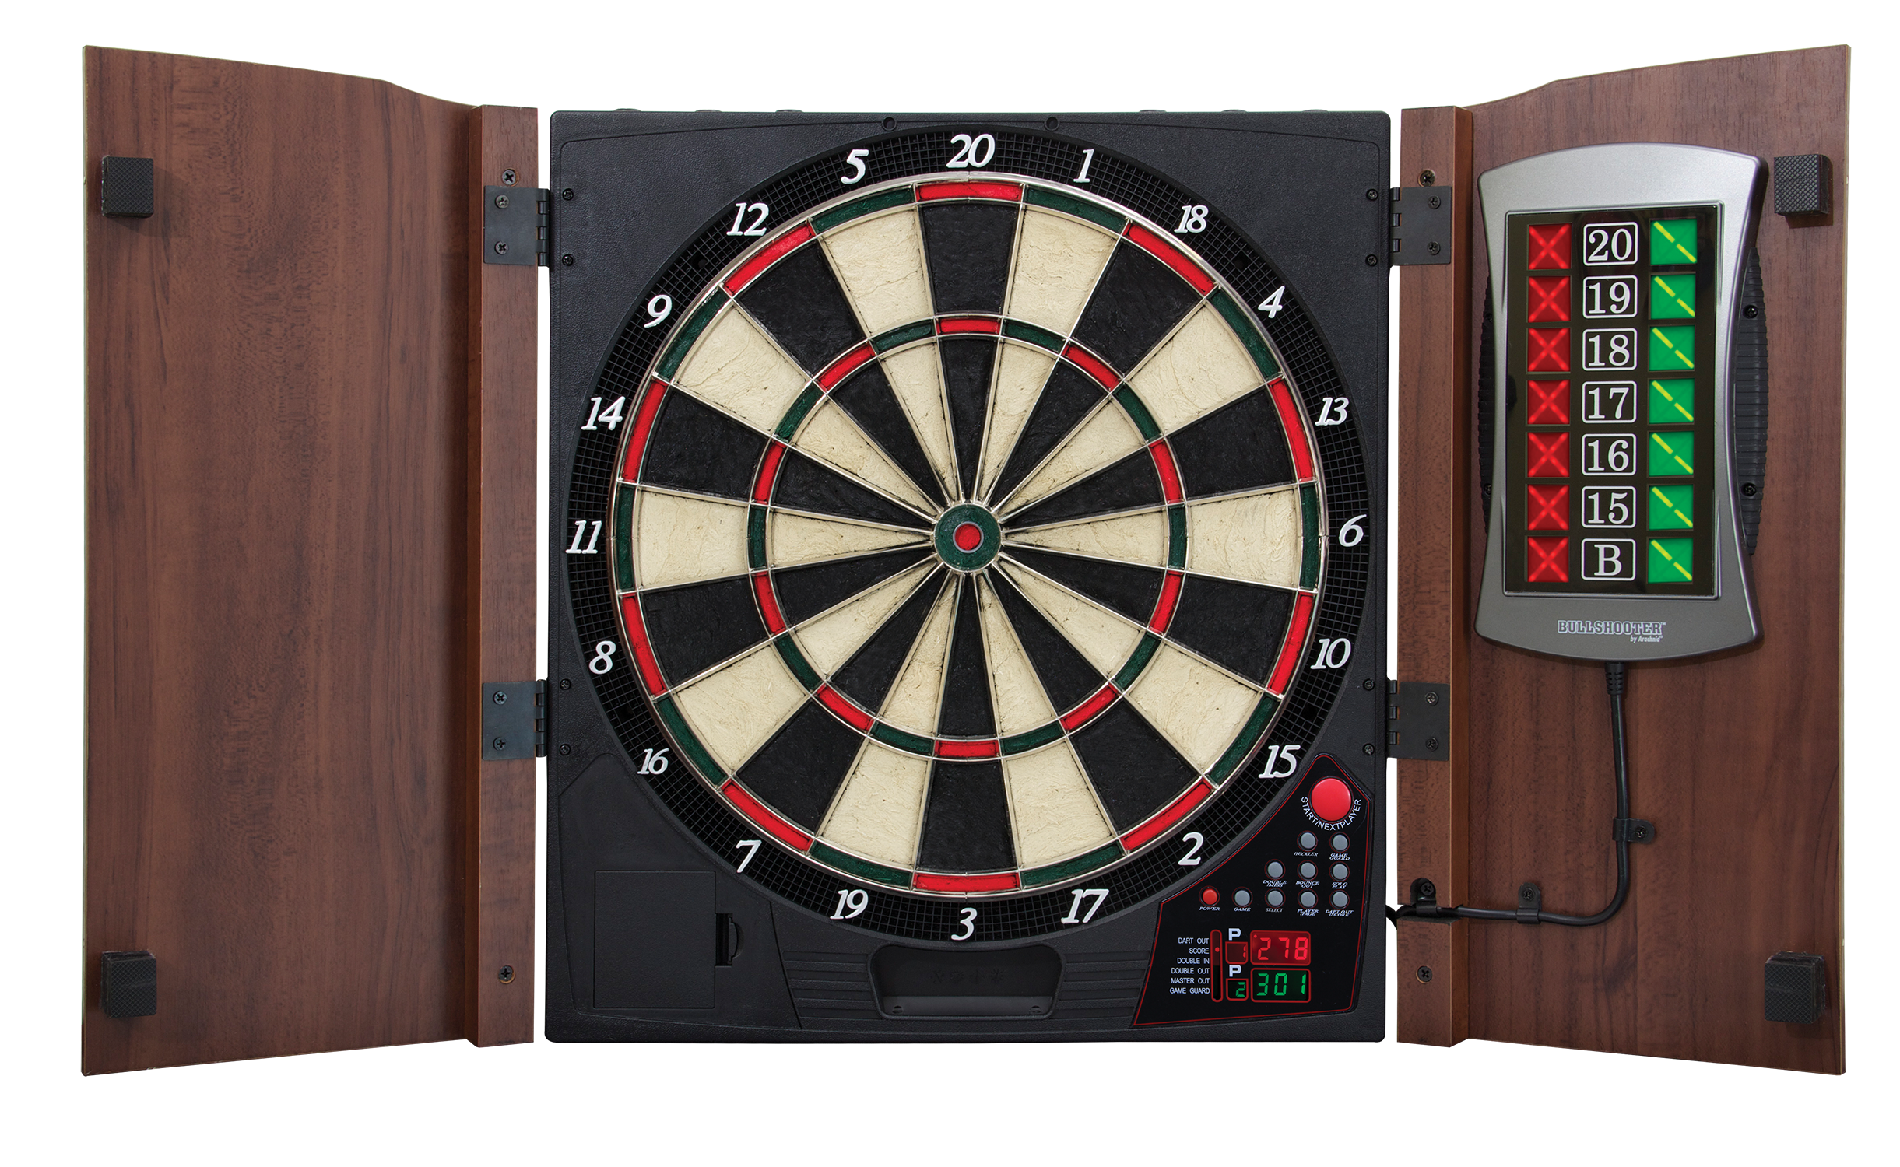 Electronic Dartboard in Wood Cabinet